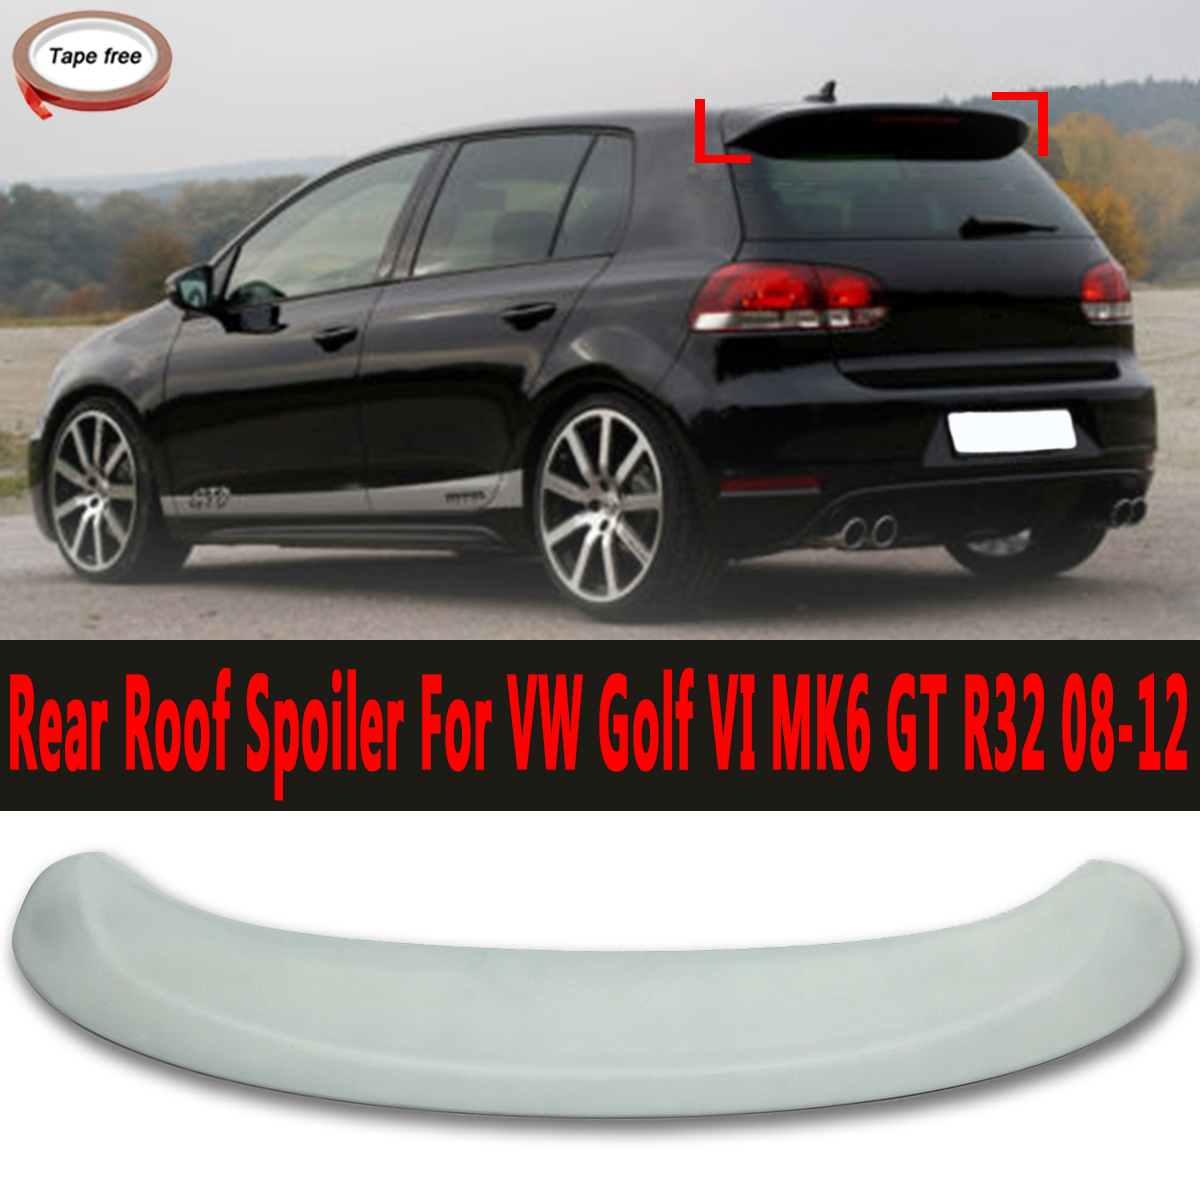 Rear Trunk Roof Spoiler Boot Lip Wing Fits For VW for Golf VI MK6 GT R32 2008-2012 колесные диски replay b174 9x19 5x120 d74 1 et48 sf